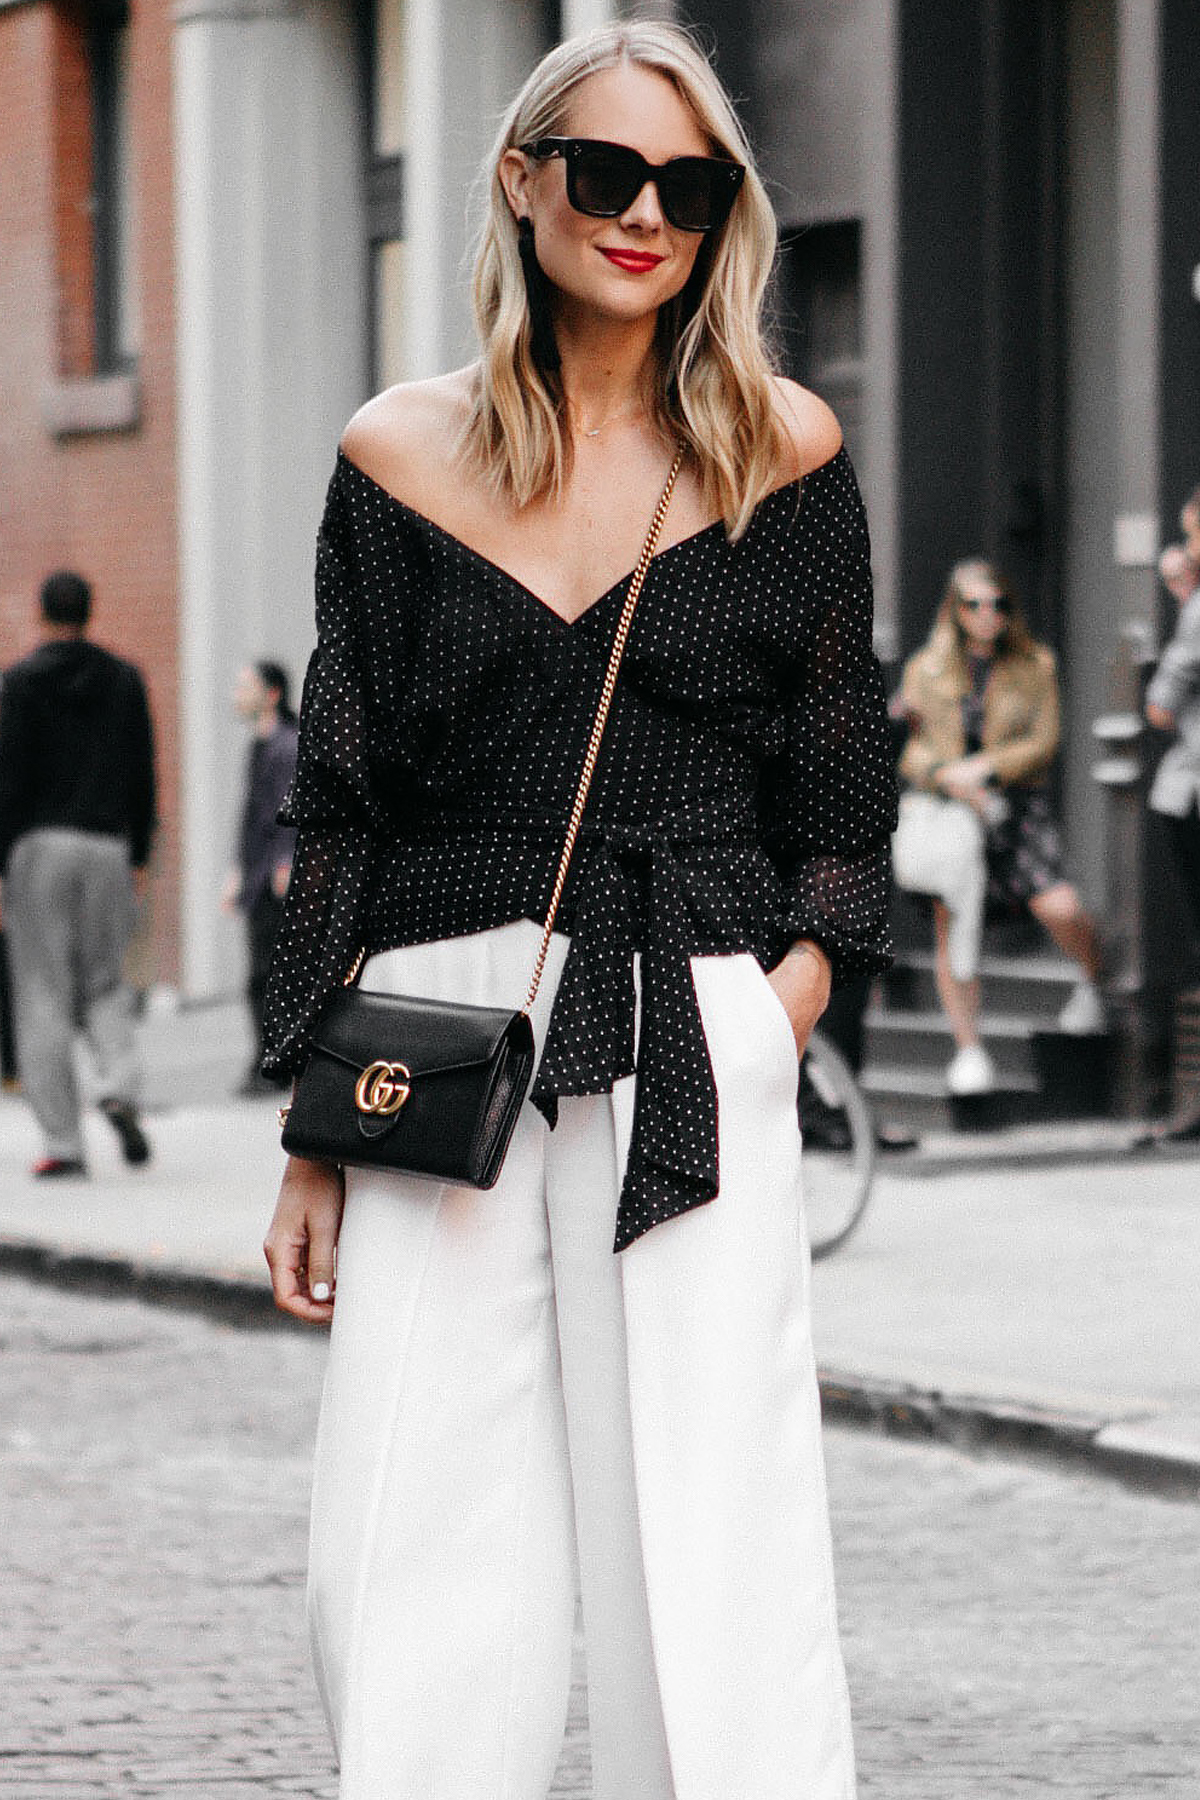 Blonde Woman Wearing Club Monaco Black Wrap Top White Culottes Gucci Marmont Handbag Fashion Jackson Dallas Blogger Fashion Blogger Street Style NYFW